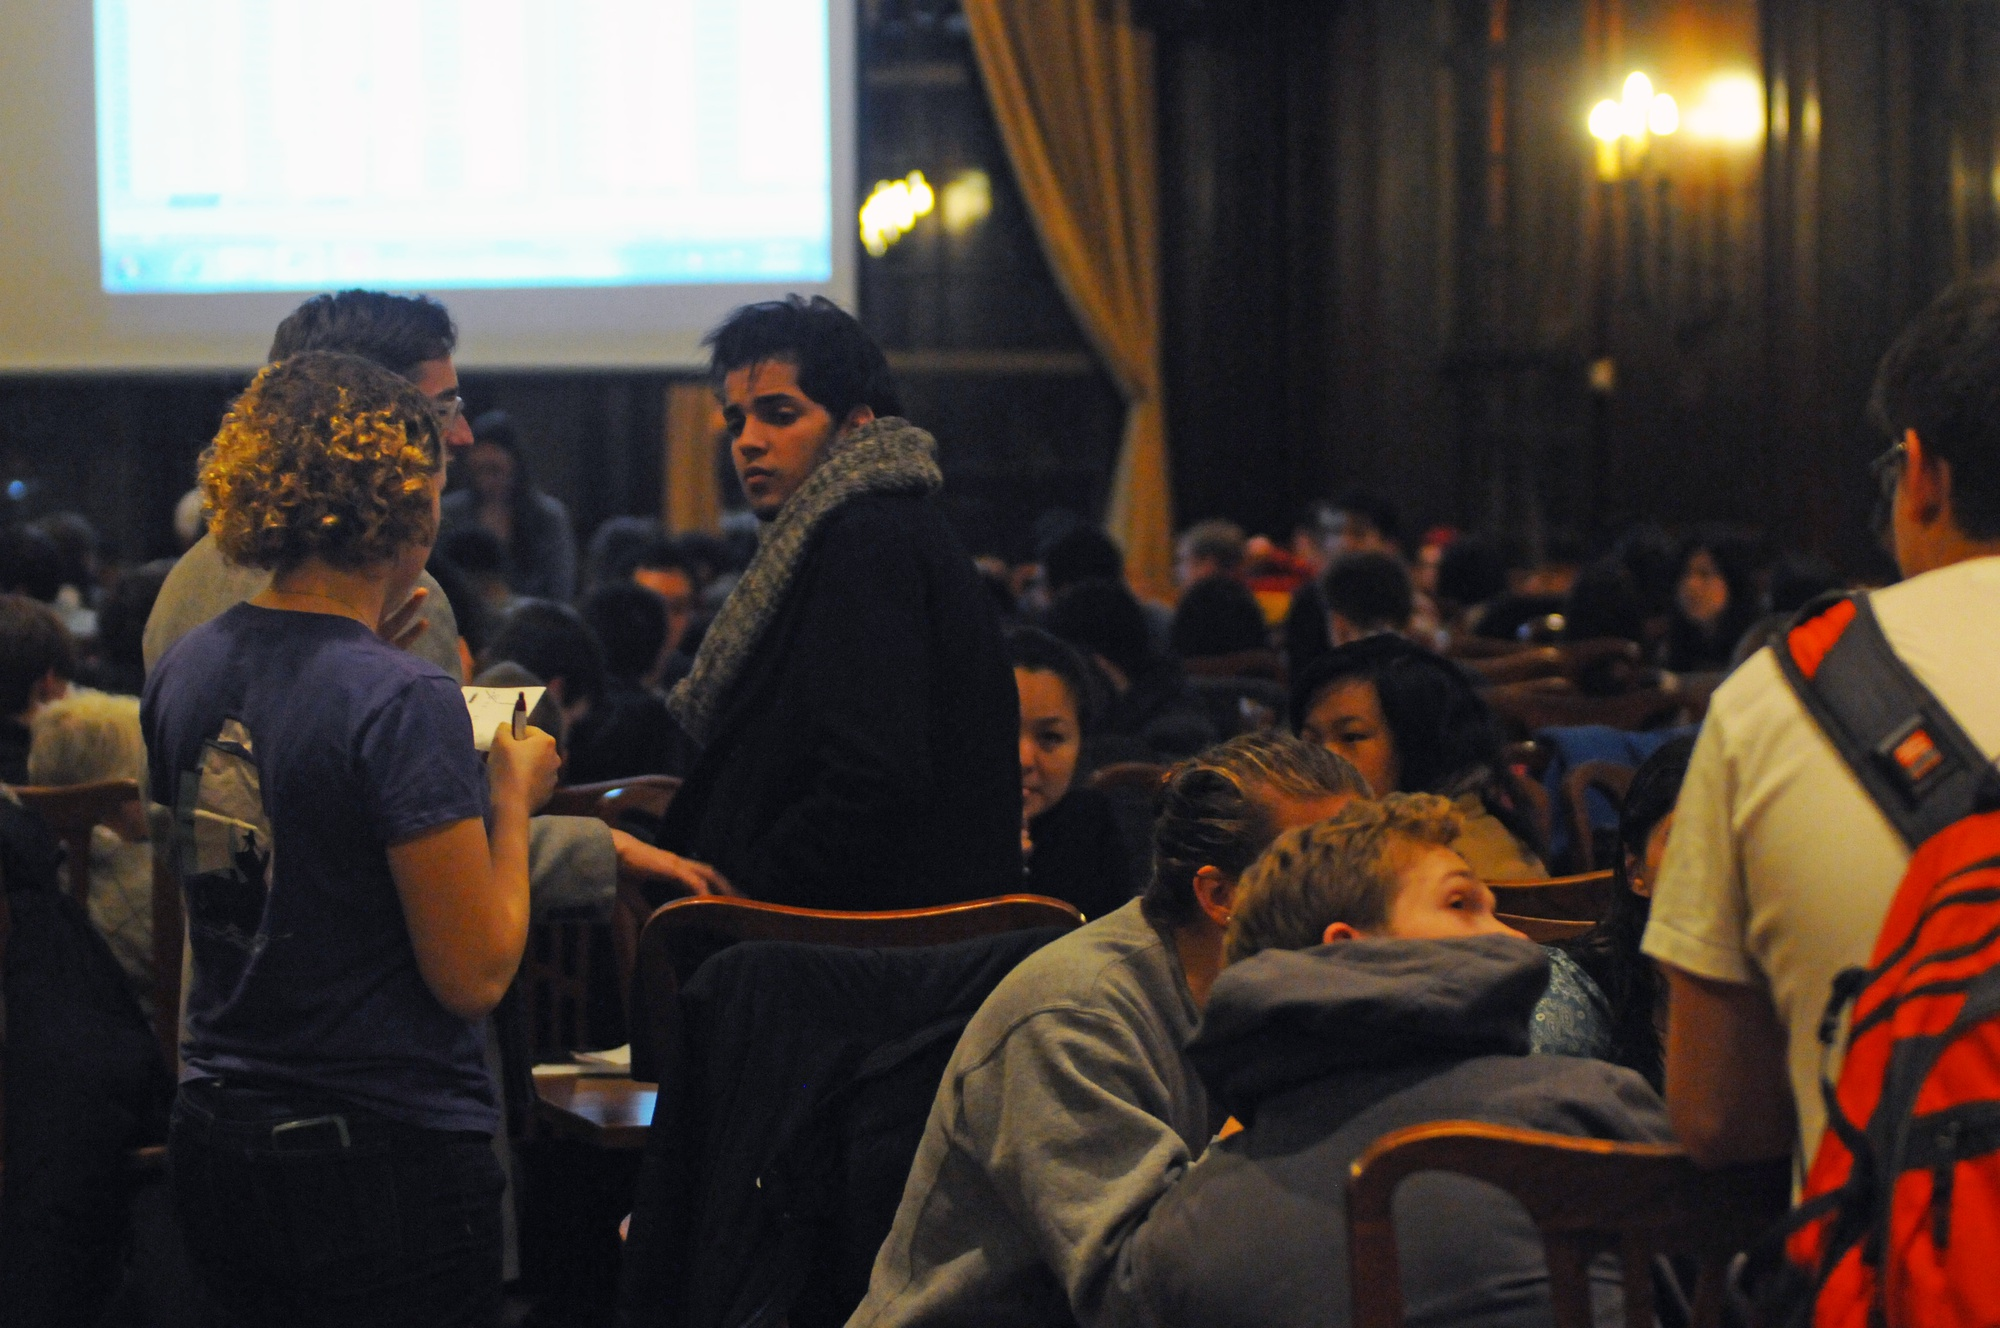 Students gather in Adams dining hall in anticipation of room assignments from the housing lottery. Many housing lotteries have taken place this week.